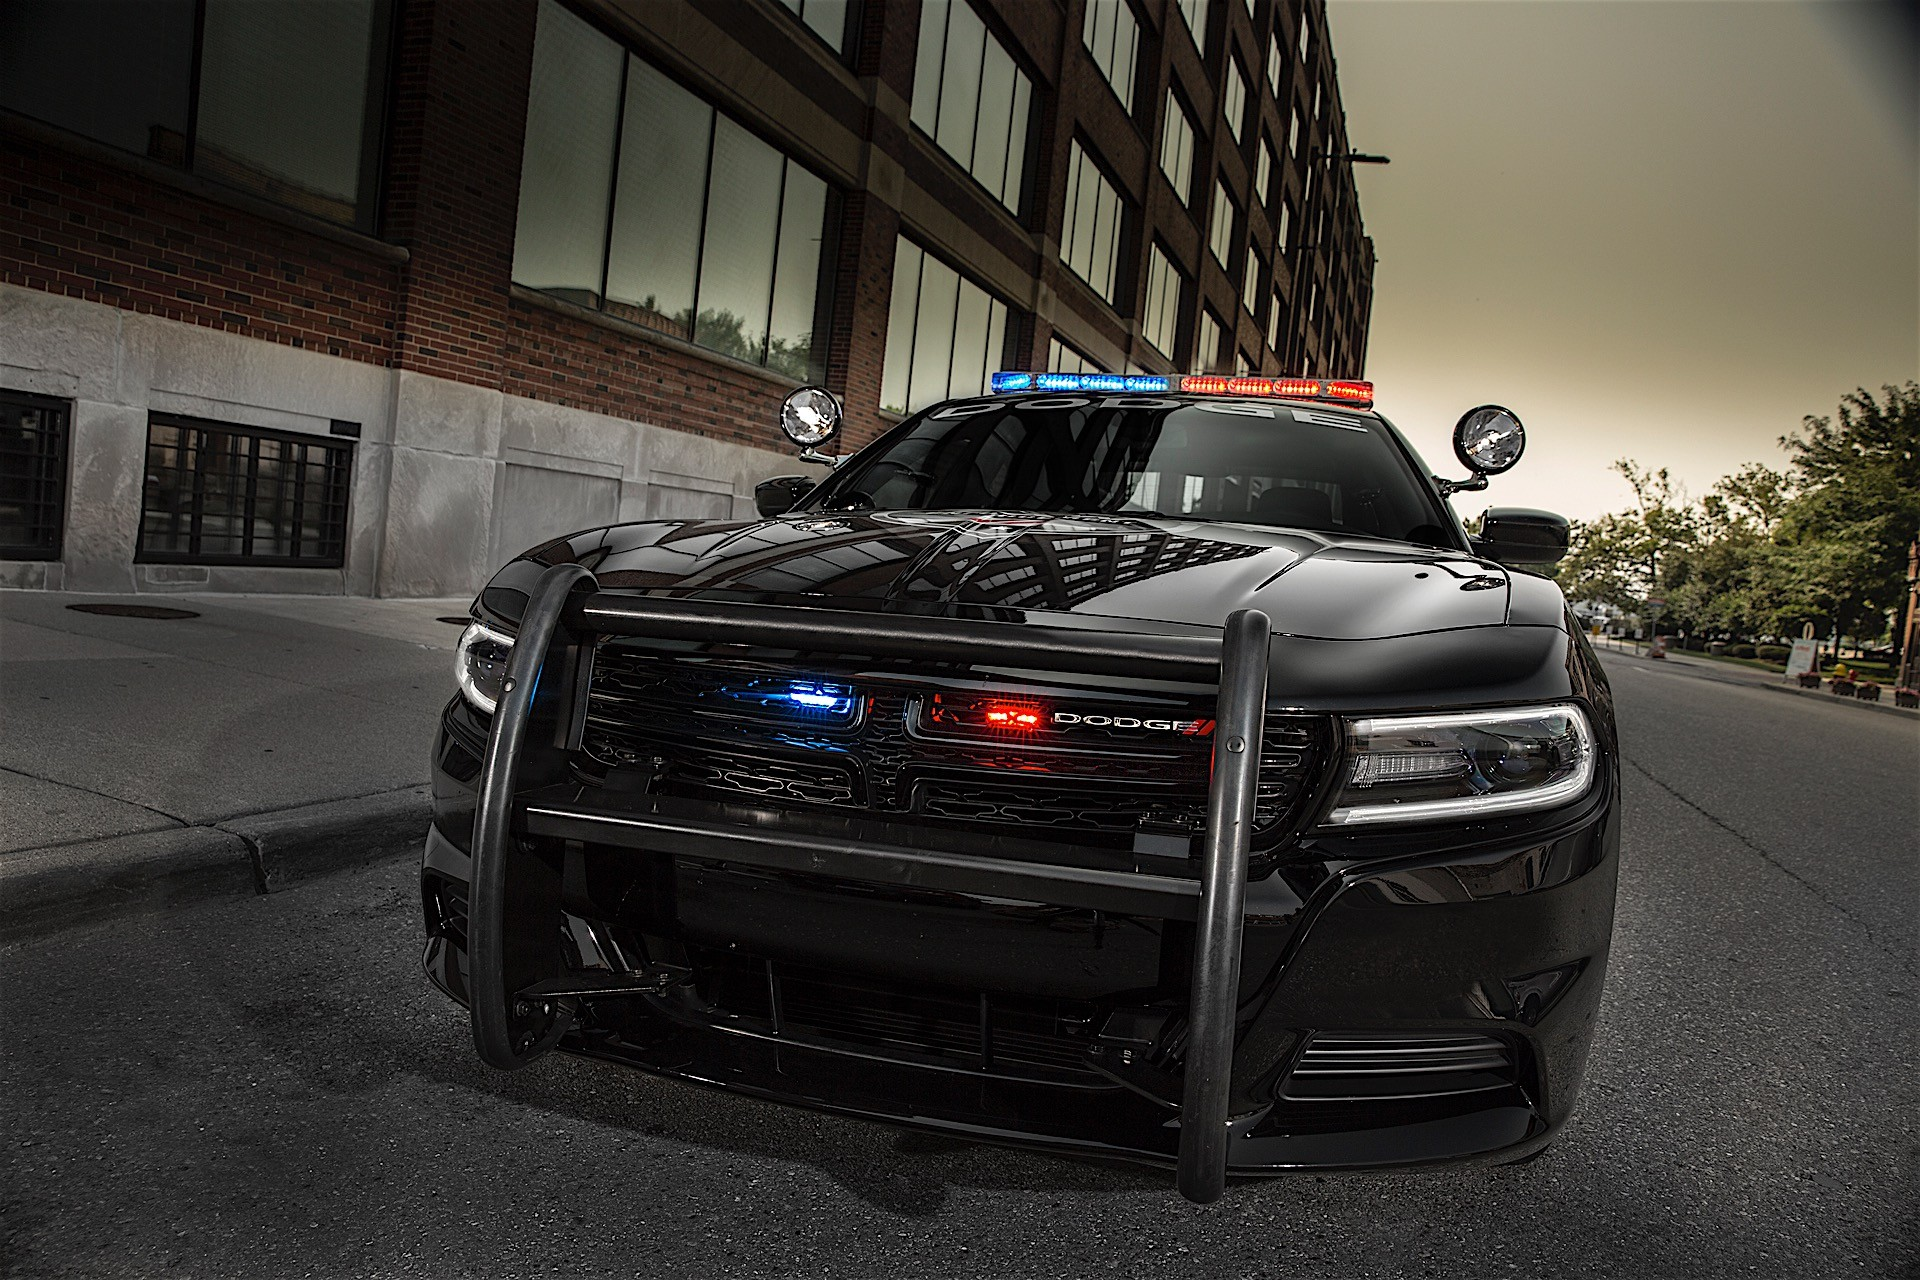 Dodge Charger 2016 >> Dodge Updates 2017 Charger Pursuit With Complimentary Officer Protection Package - autoevolution